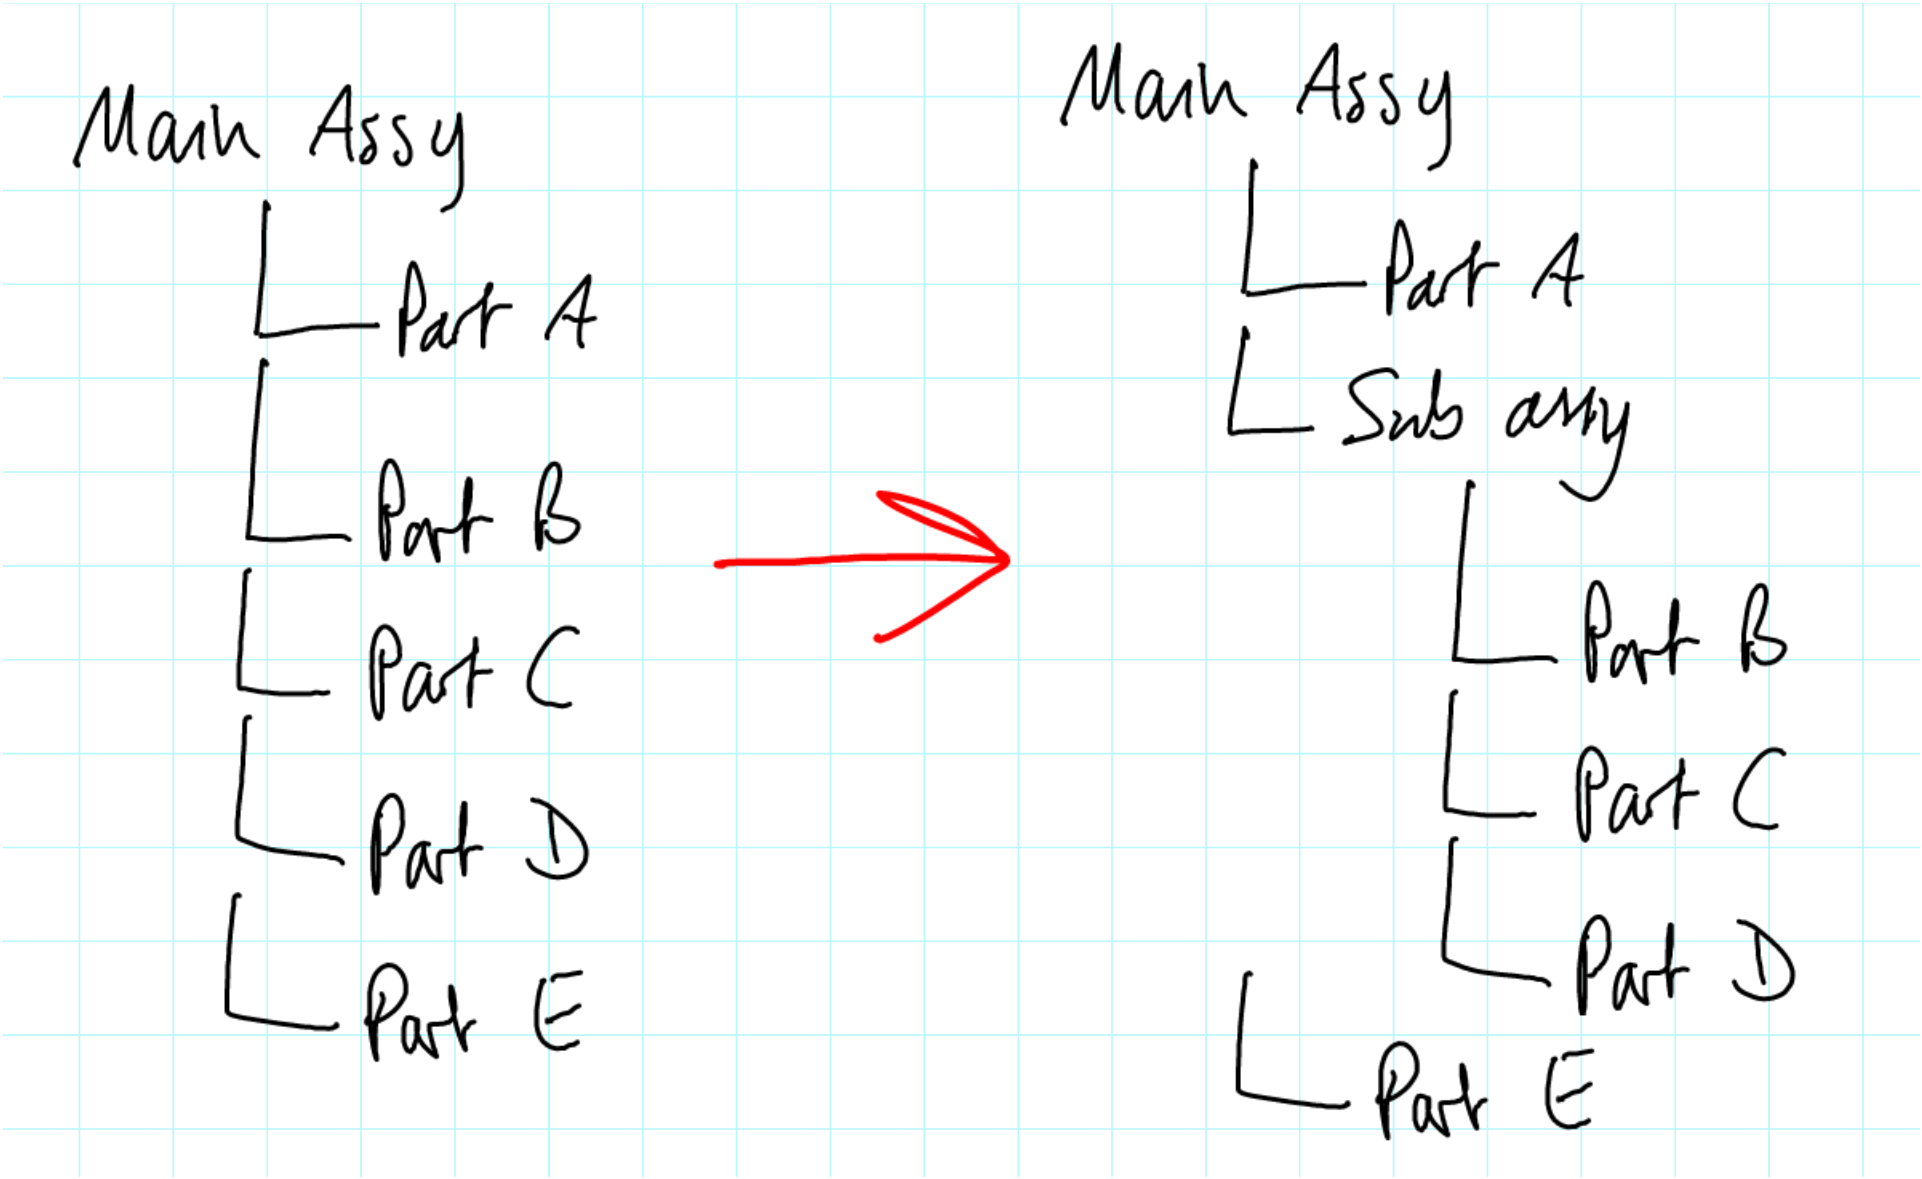 Solved: Creating a new sub-assembly within an assembly